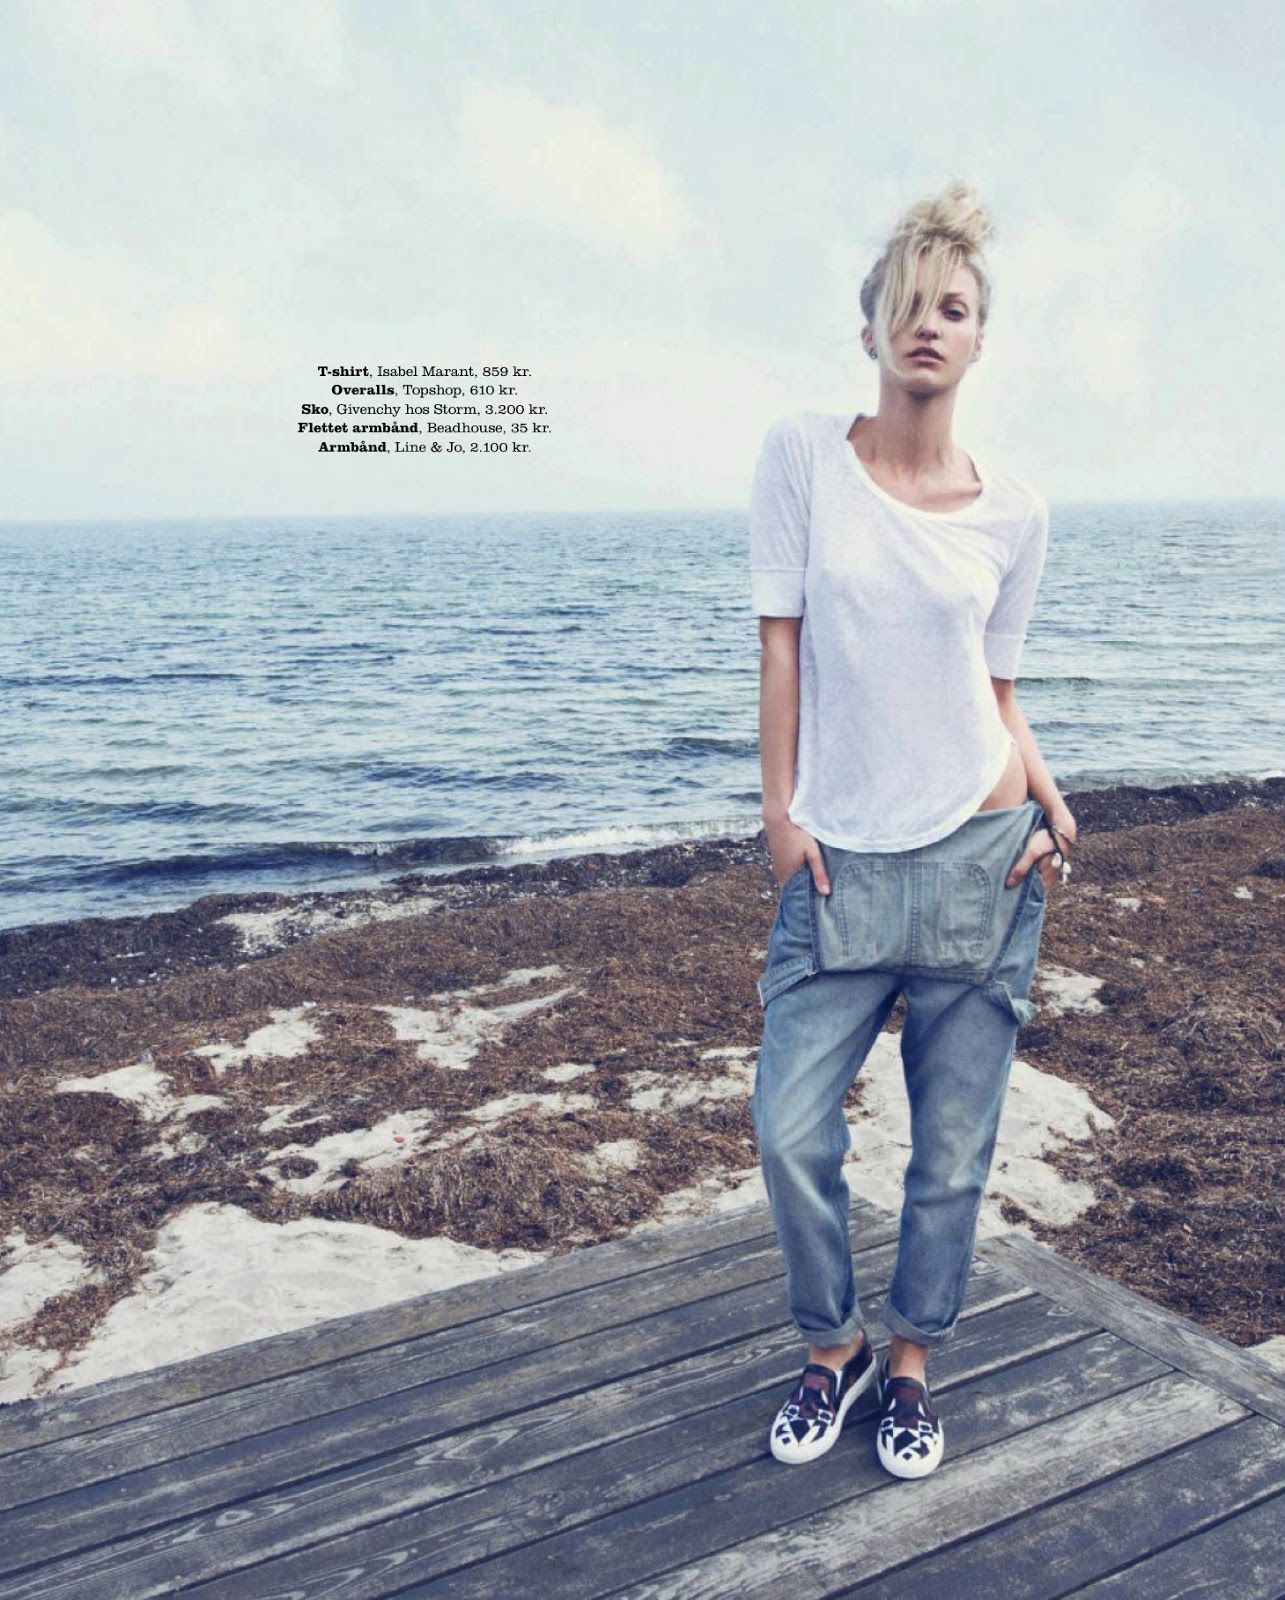 shore thing: theres alexandersson by olivia frølich for elle denmark july 2013